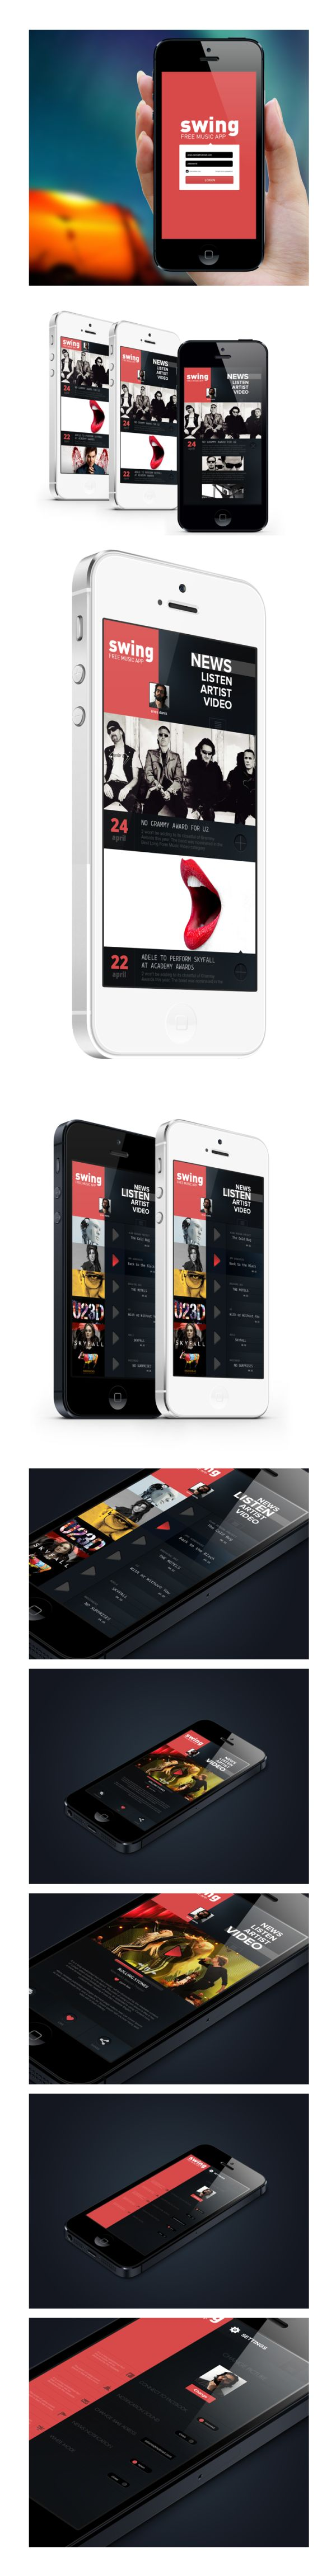 very cool iphone Music App. Concept by Enes Danış, via #Behan... on Twitpic